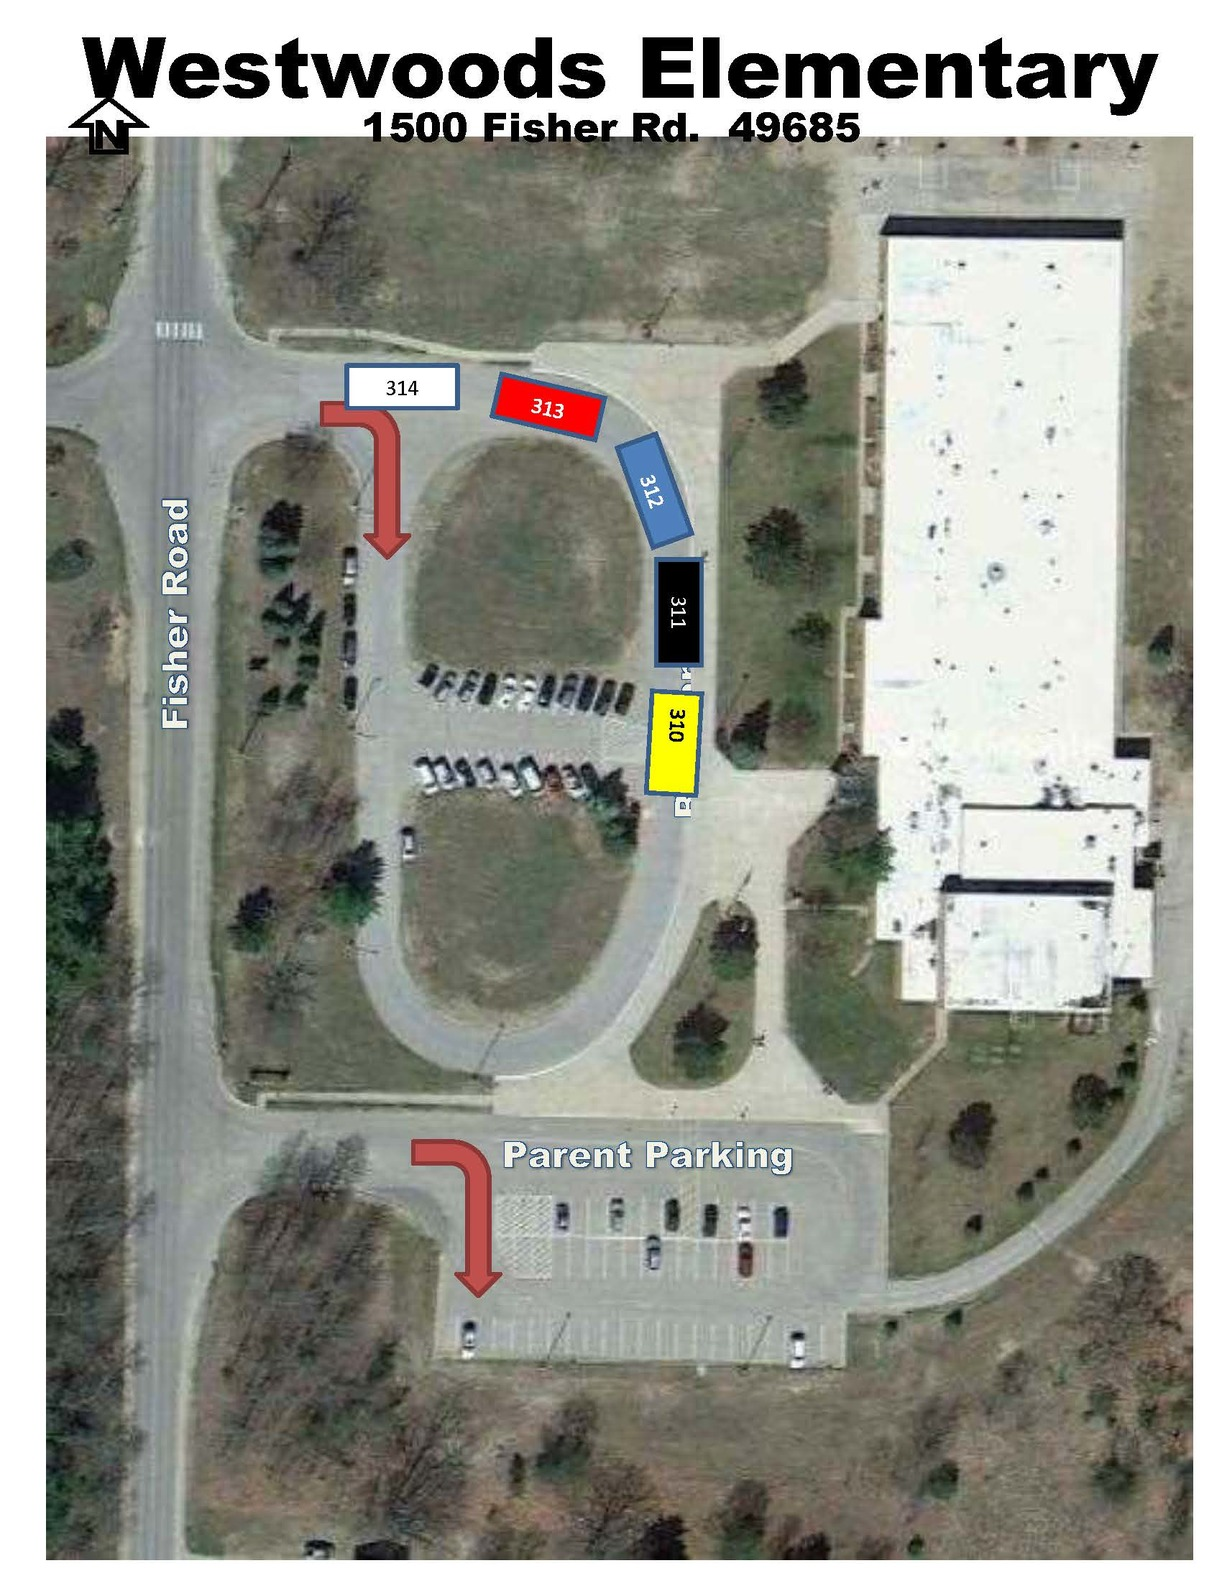 westwoods bus ramp parking map